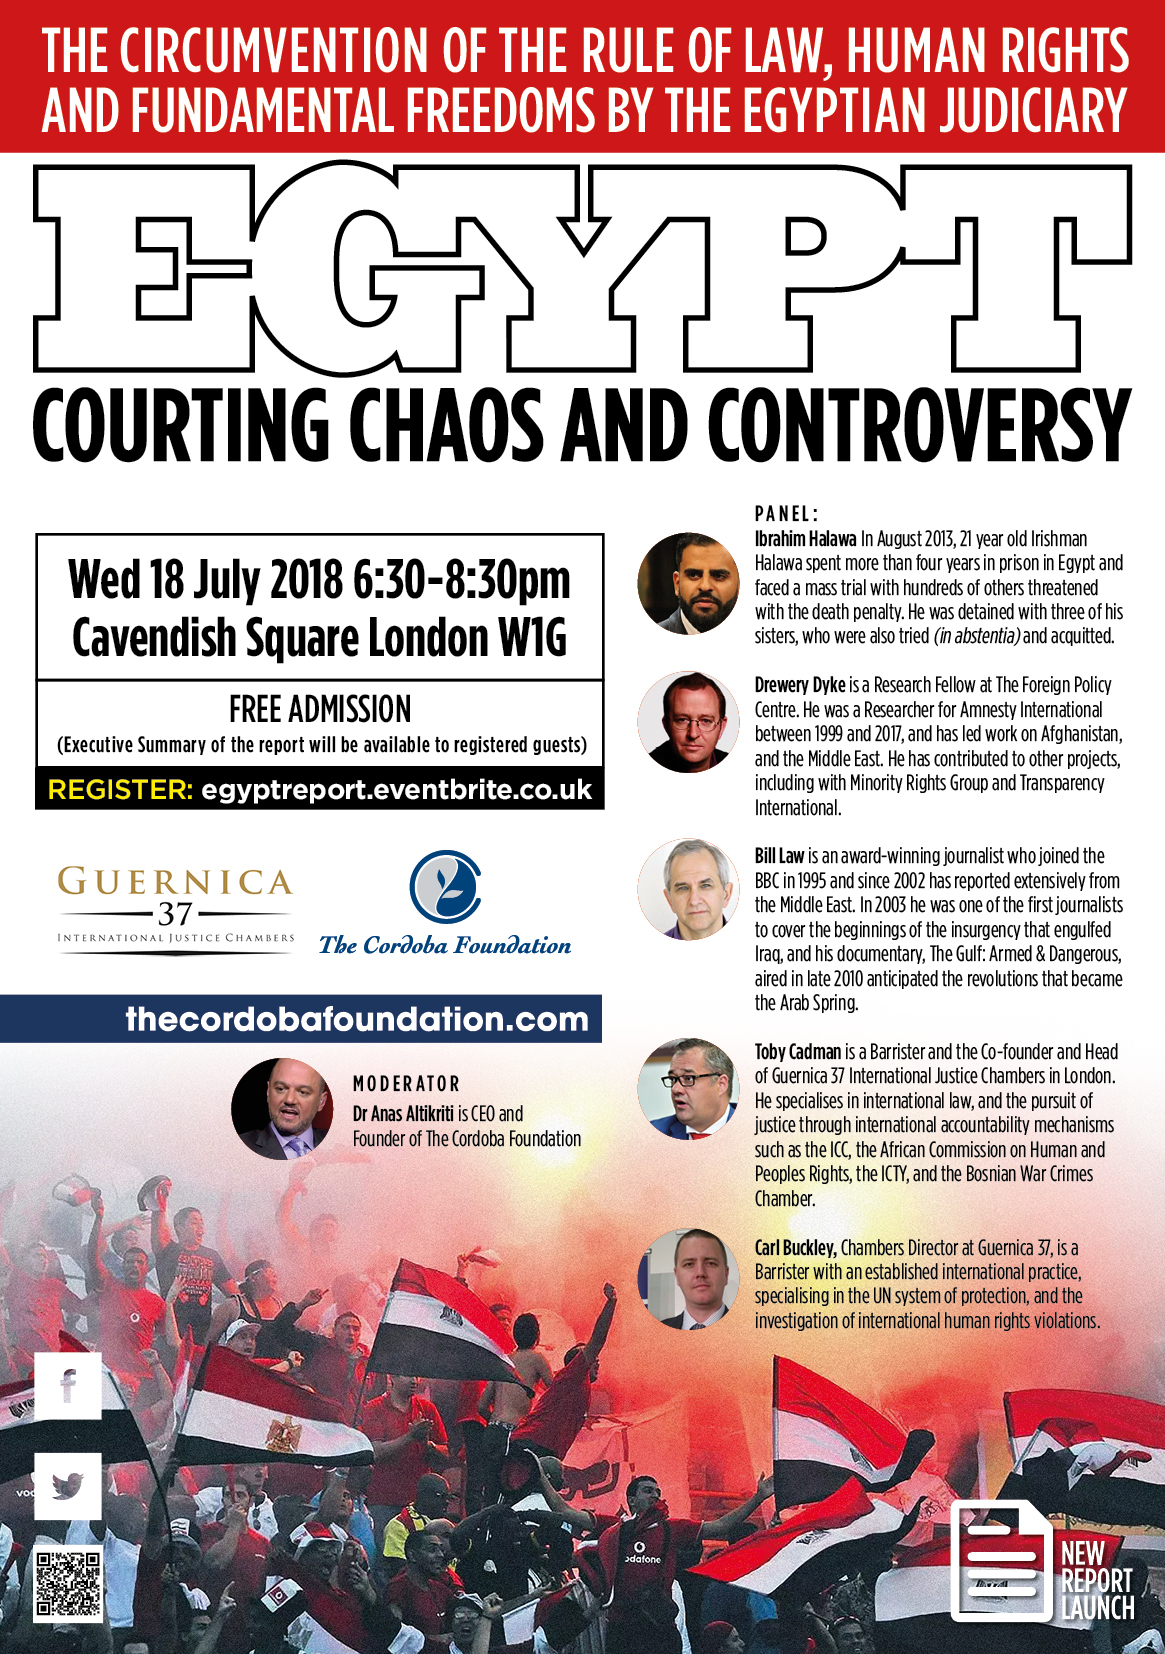 EGYPT – COURTING CHAOS AND CONTROVERSY: THE CIRCUMVENTION OF THE RULE OF LAW, HUMAN RIGHTS AND FUNDAMENTAL FREEDOMS BY THE EGYPTIAN JUDICIARY